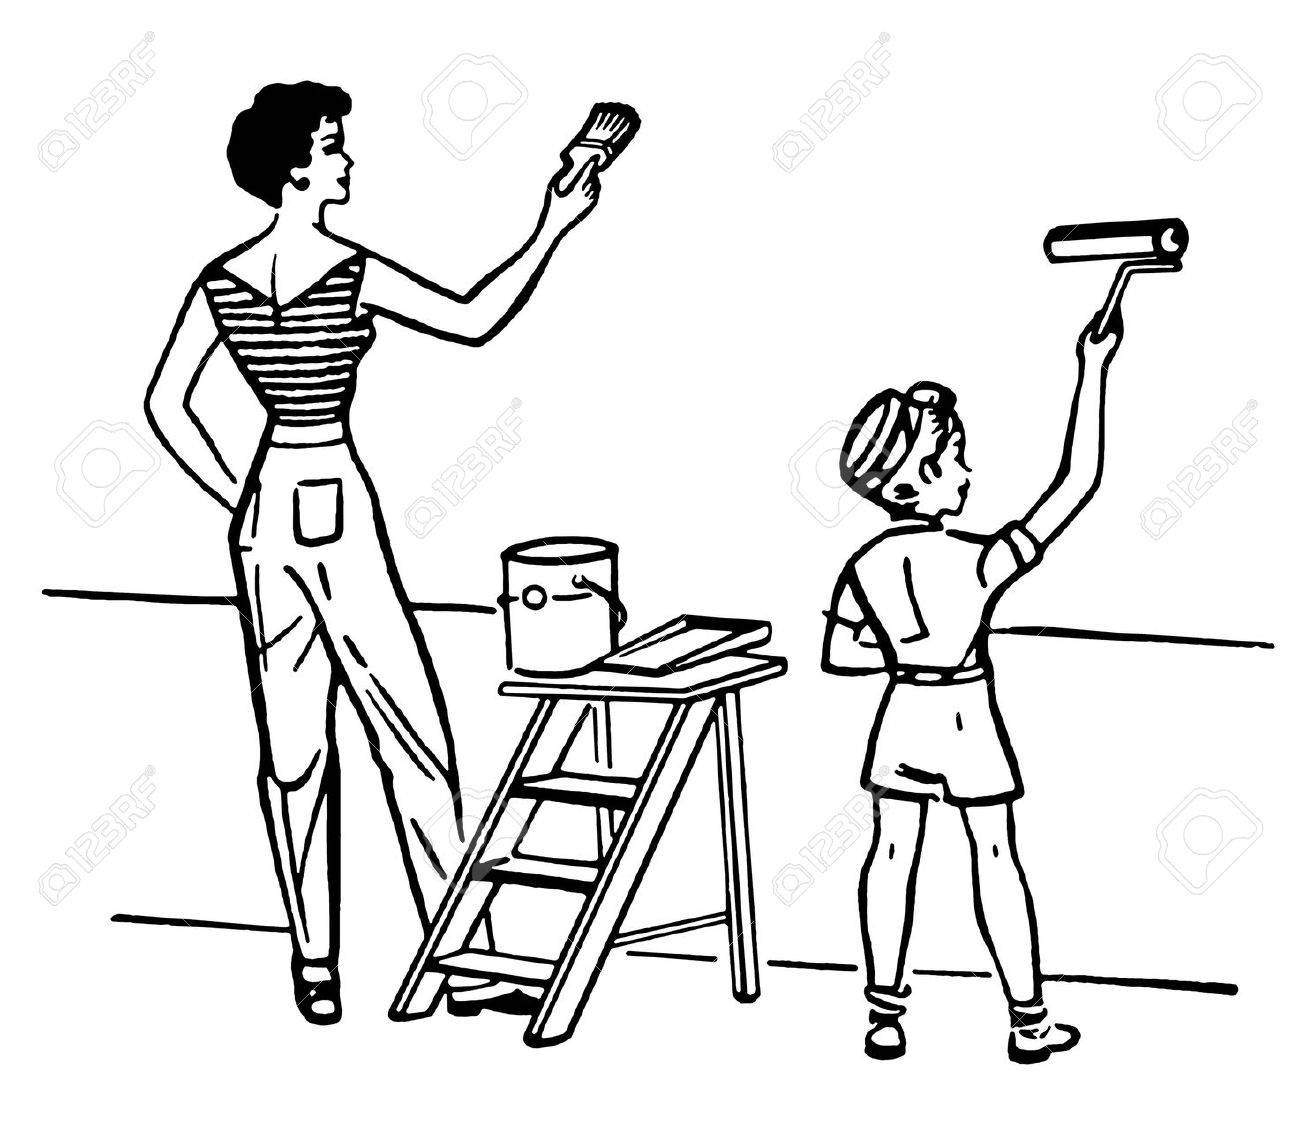 People Painting Walls Clip Art - A black and white version of a mother and child painting walls together stock photo